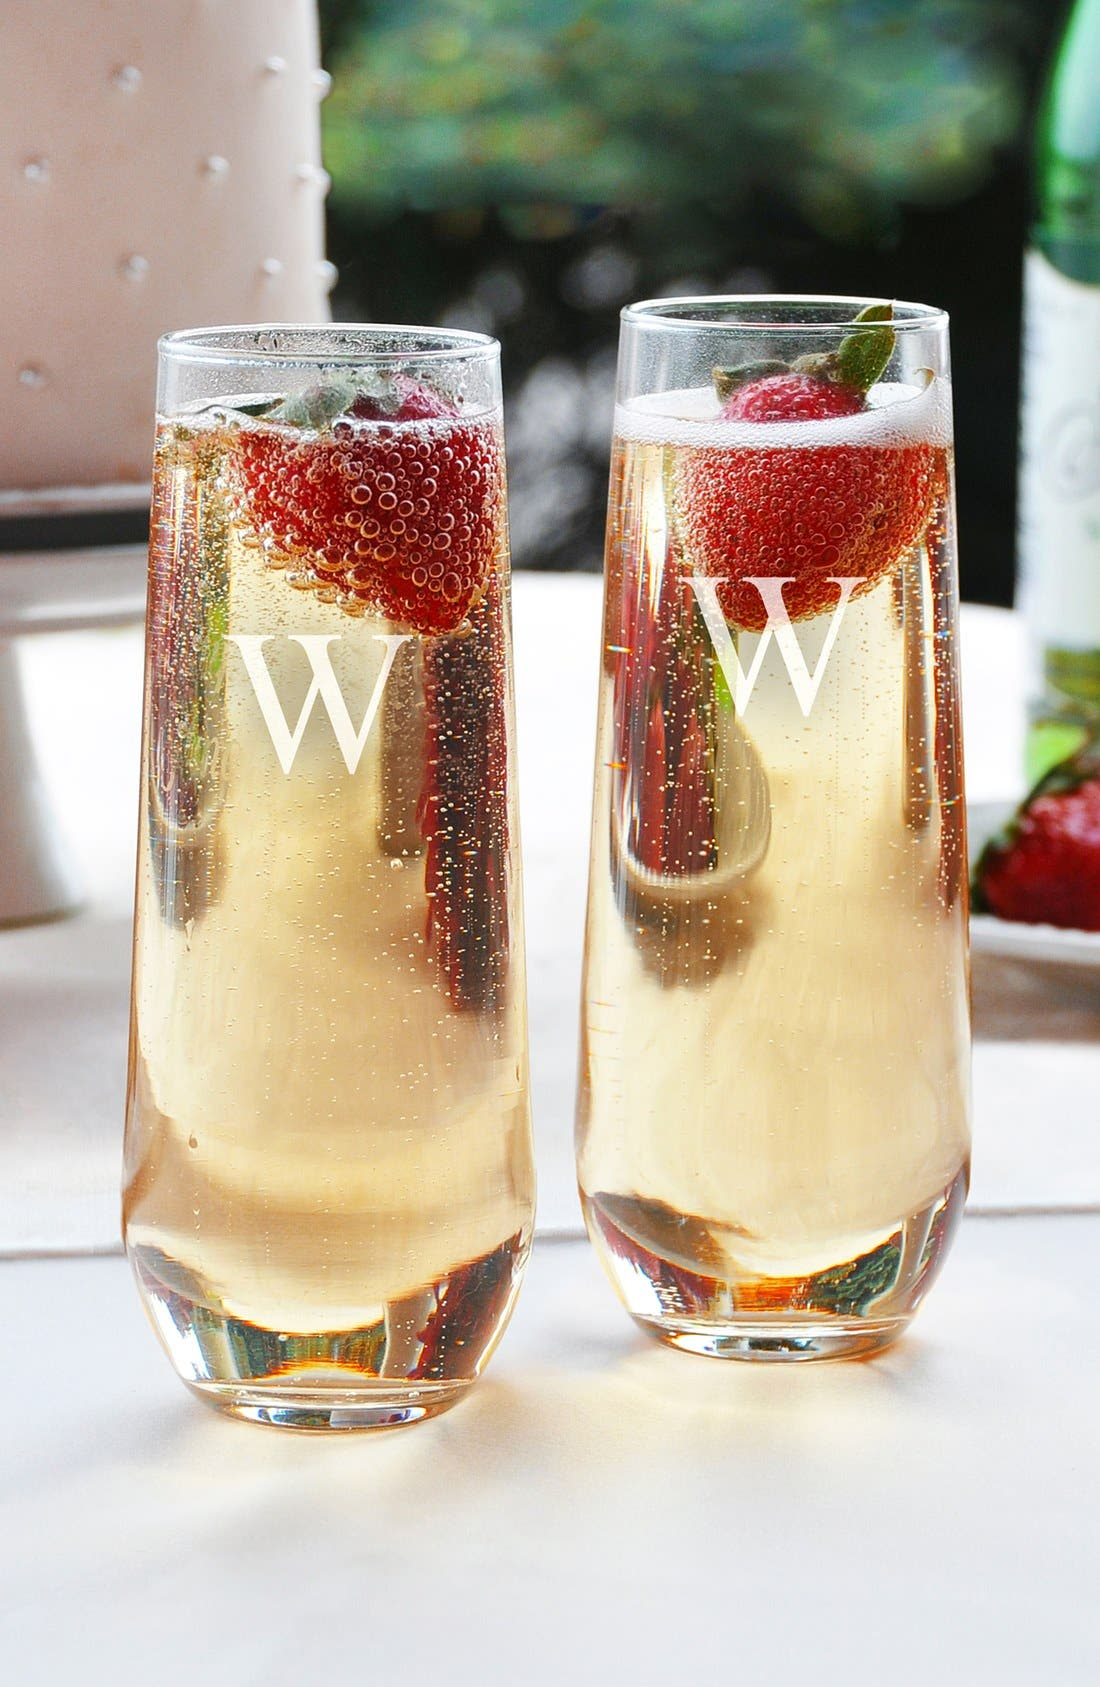 Alternate Image 1 Selected - Cathy's Concepts Personalized Stemless Champagne Flutes (Set of 2)